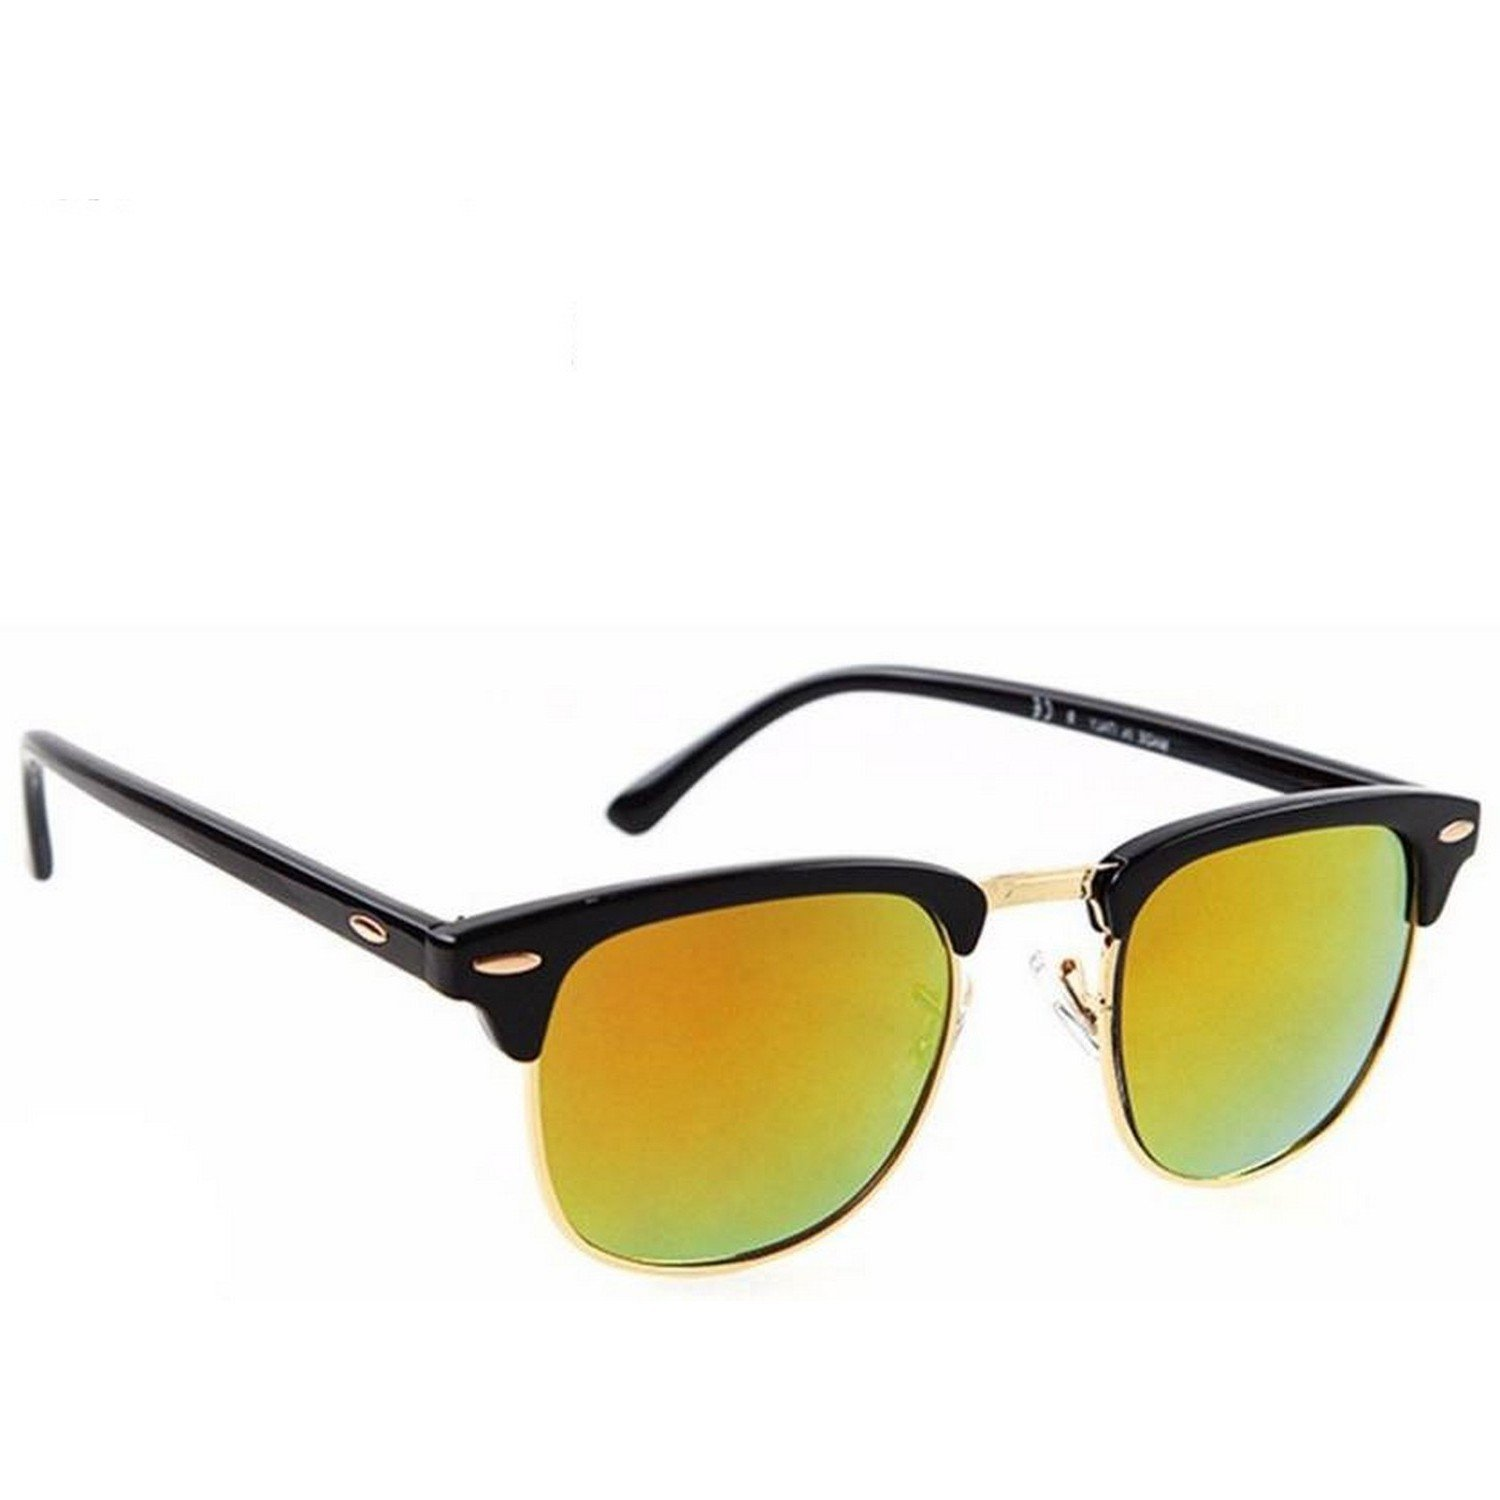 d760bcc3042 Dervin Black Golden Frame Yellow Shade Wayfarer Sunglasses for Men   Women   Amazon.in  Clothing   Accessories